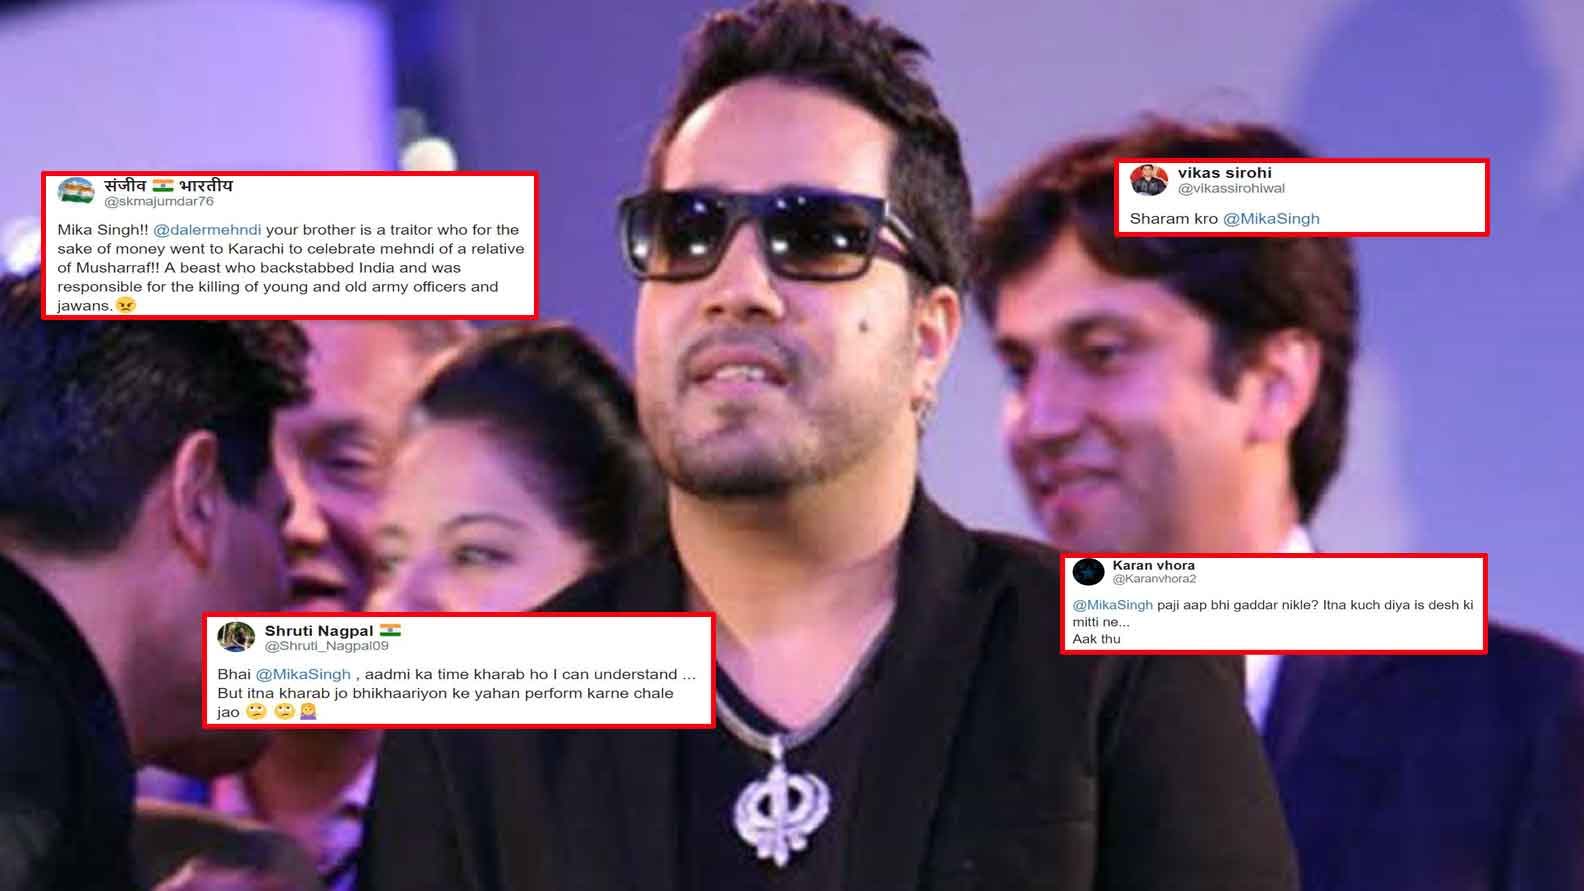 Mika Singh performs at Pervez Musharraf's relative's event in Pakistan,  leaves fans outraged